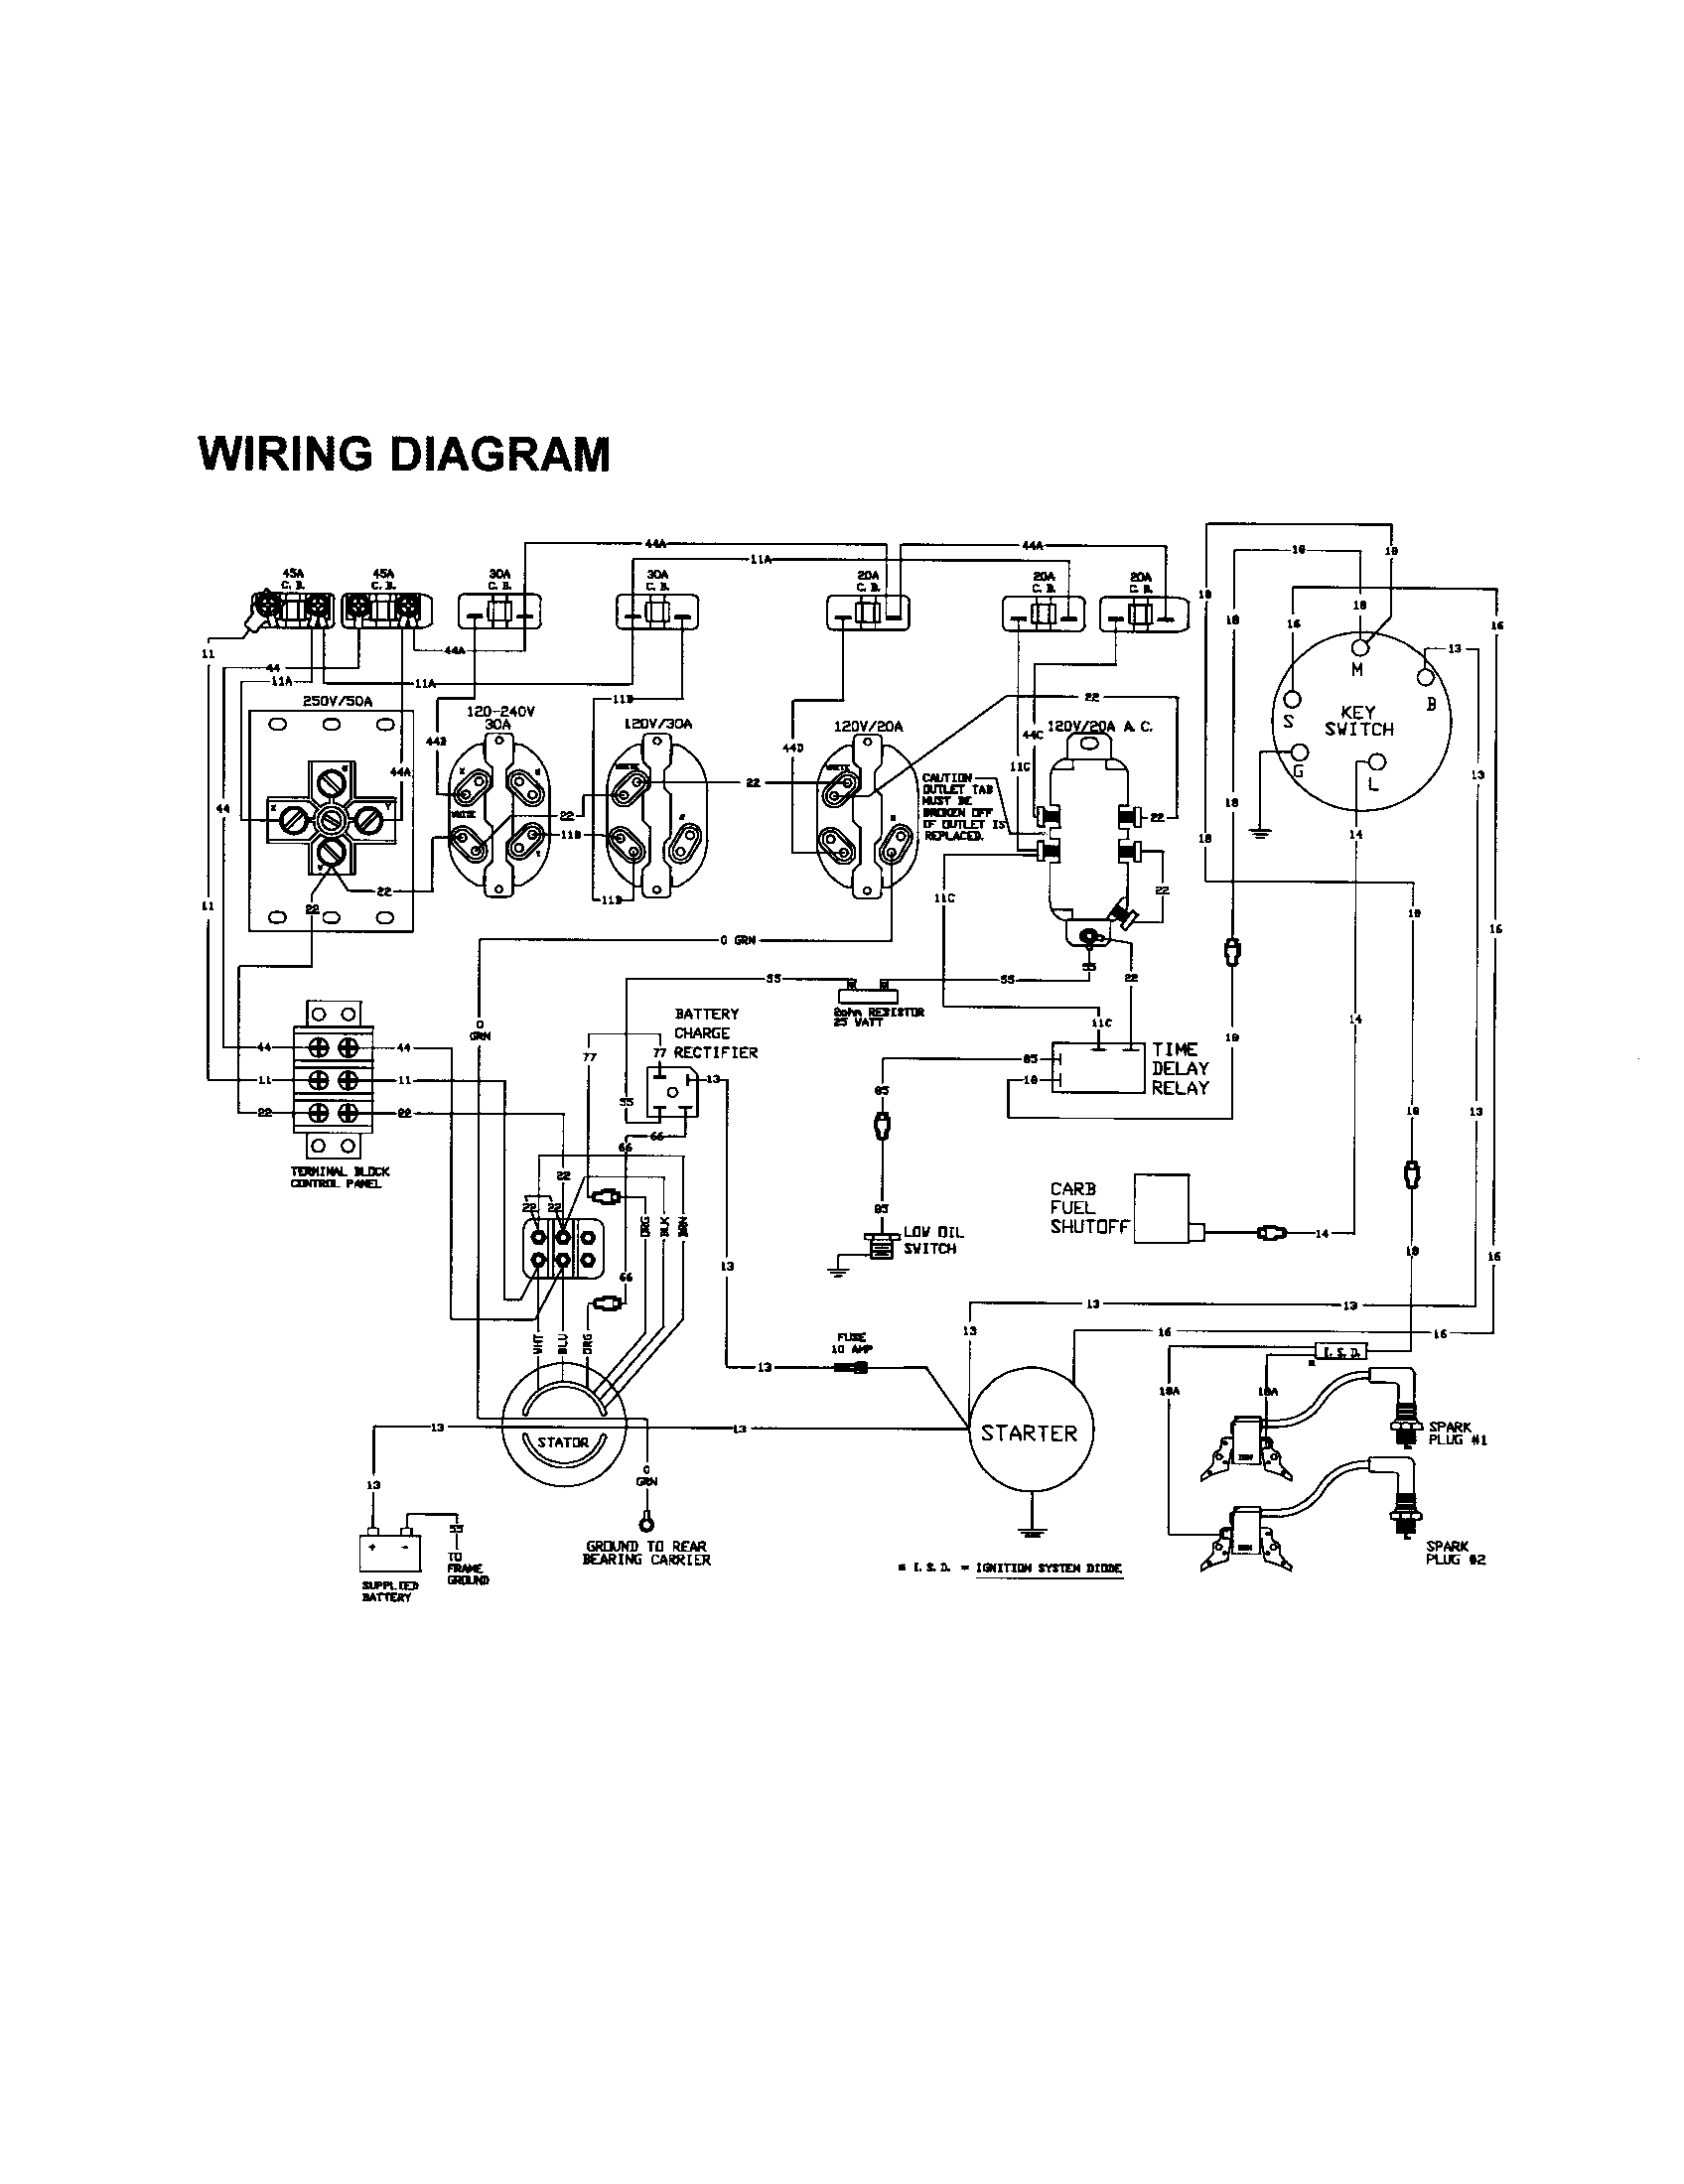 [SCHEMATICS_48IS]  Kdc 352u Wiring Diagram - F6 wiring diagram | Kenwood Kdc 352u Wiring Diagram |  | telephonie-dentreprise-var.fr